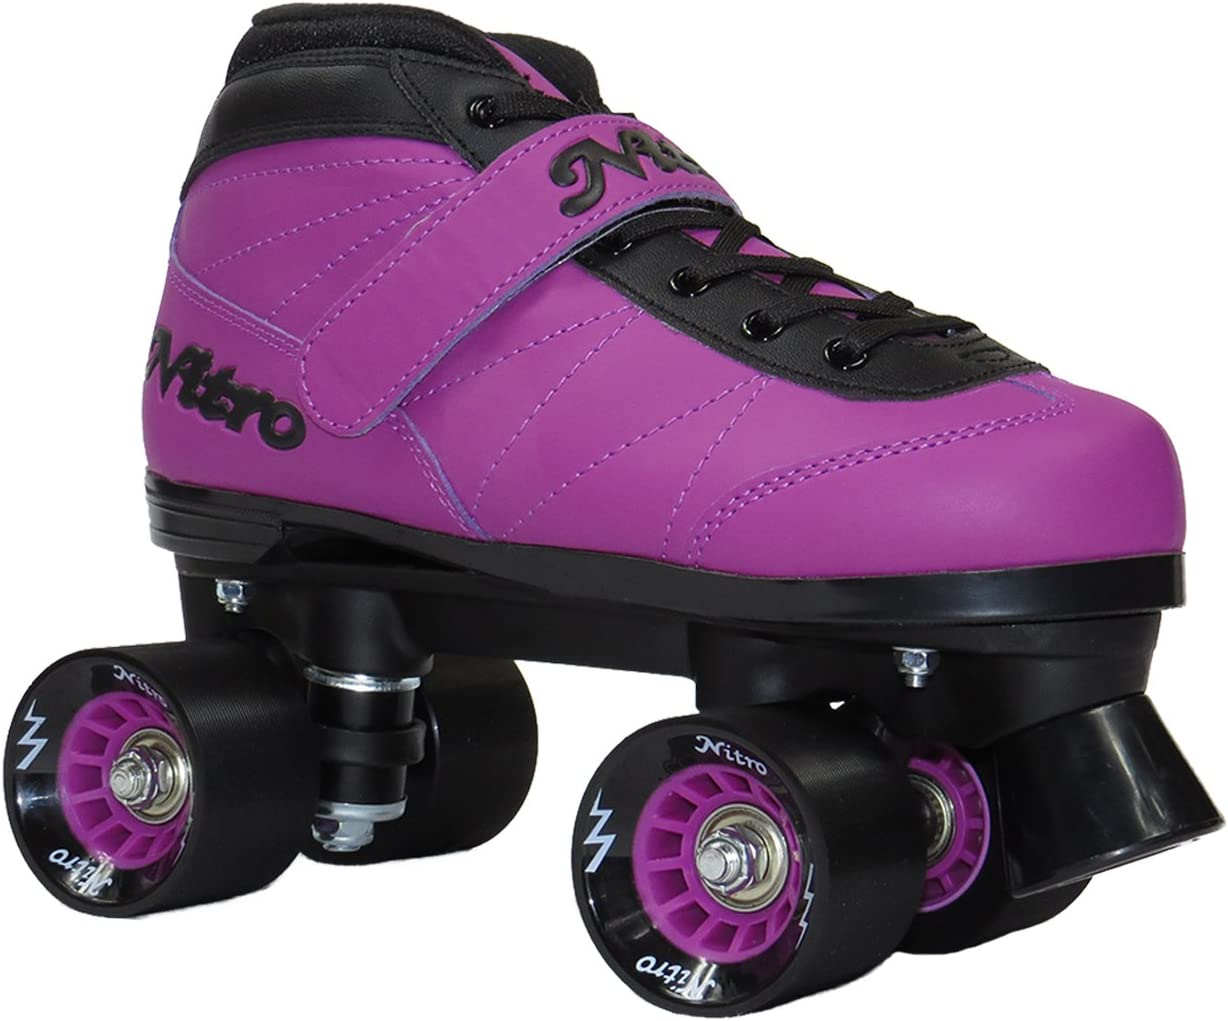 (Youth 3) - Epic Skates NitTurPrp03 Nitro Turbo Quad Speed Skates, 紫の